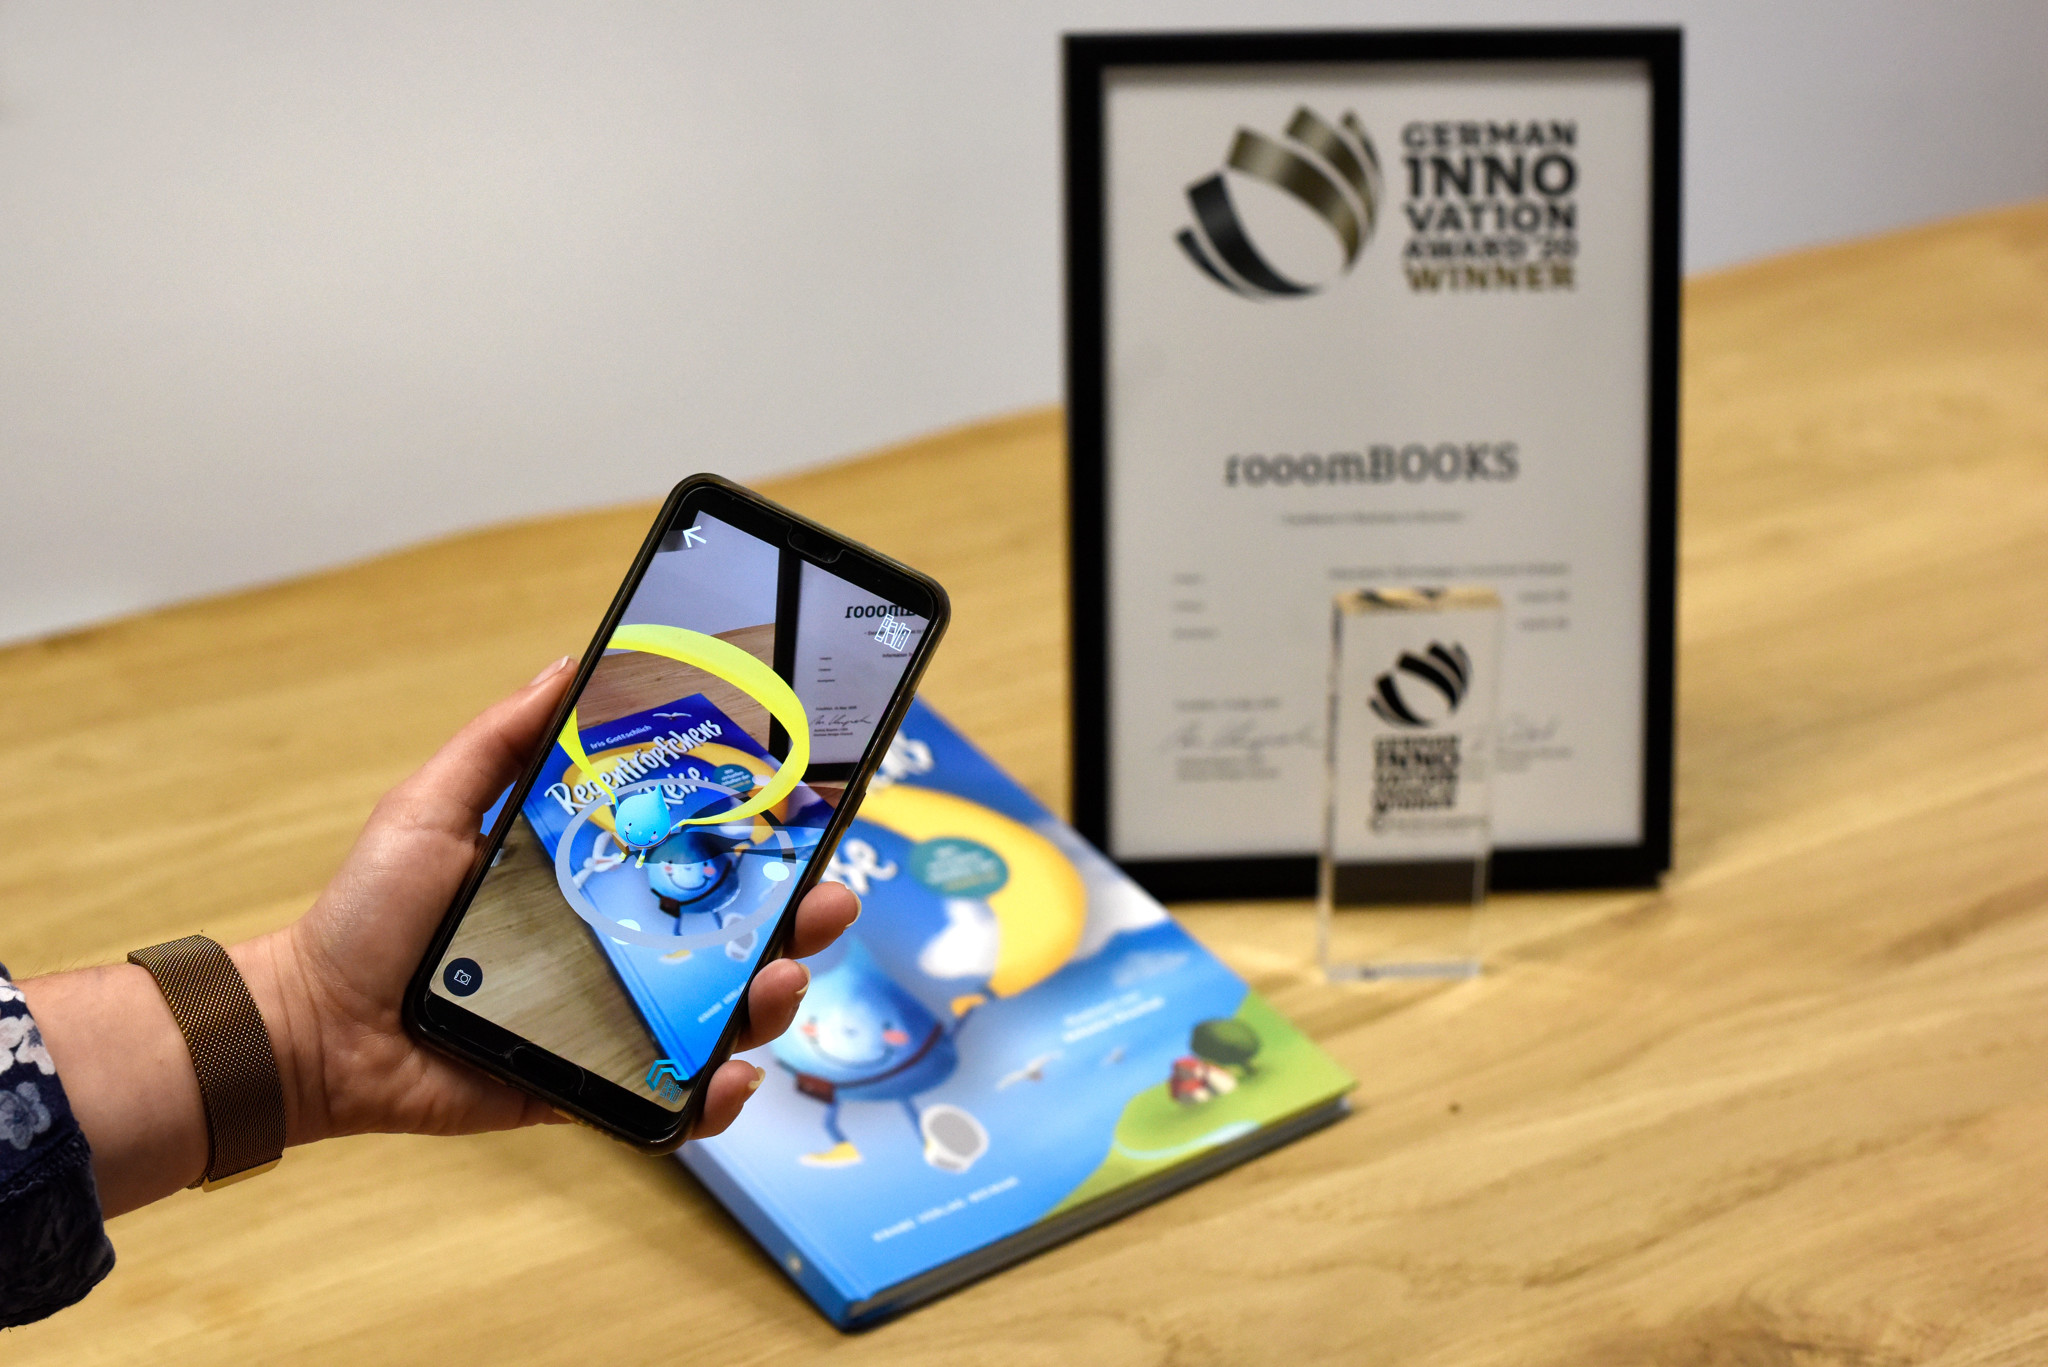 Picture of the German Innovation Award and raindrop journey